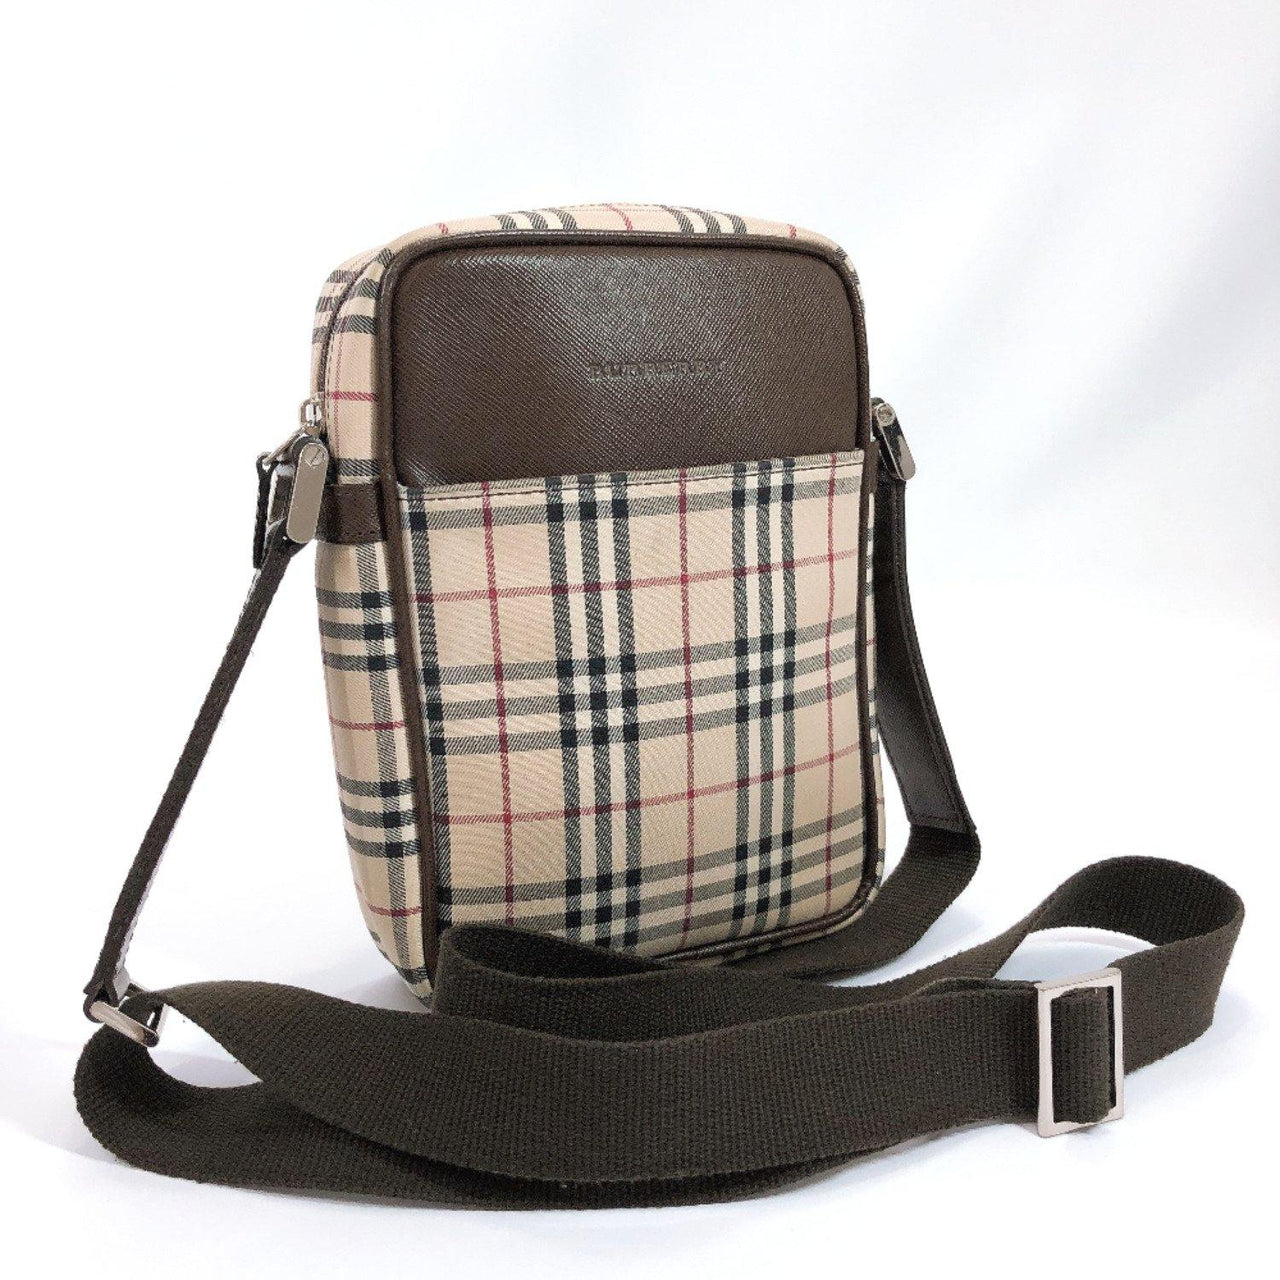 BURBERRY Shoulder Bag Vintage check Ikat nylon canvas/leather beige Brown Women Used - JP-BRANDS.com